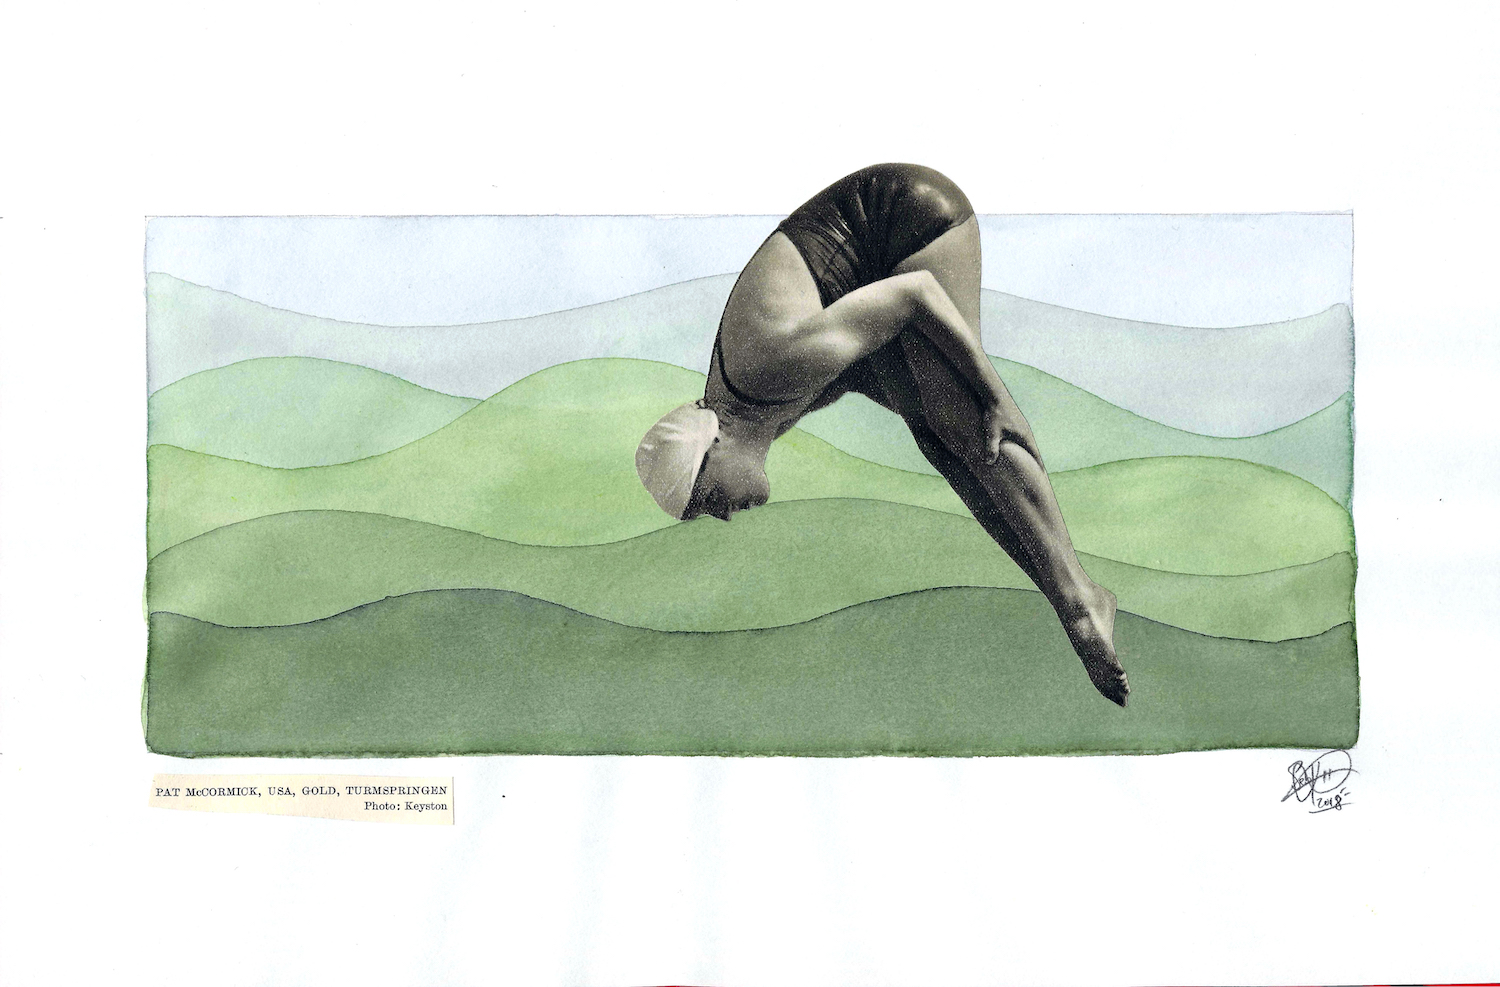 1952 Olympics watercolor collage 2.jpeg